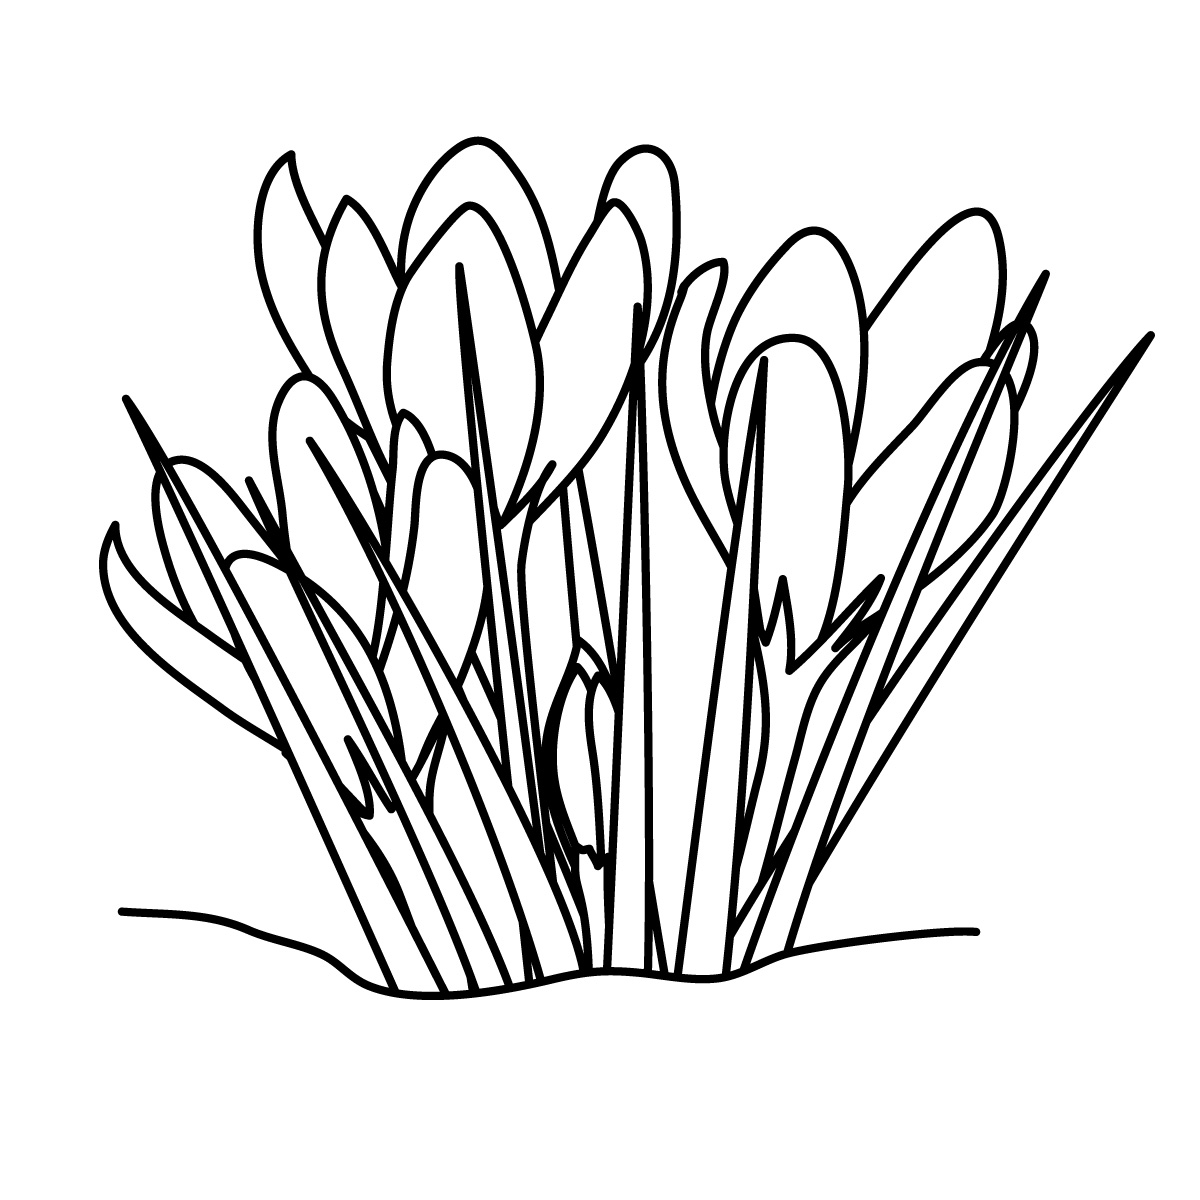 Grass  black and white grass clipart line drawing pencil and in color grass